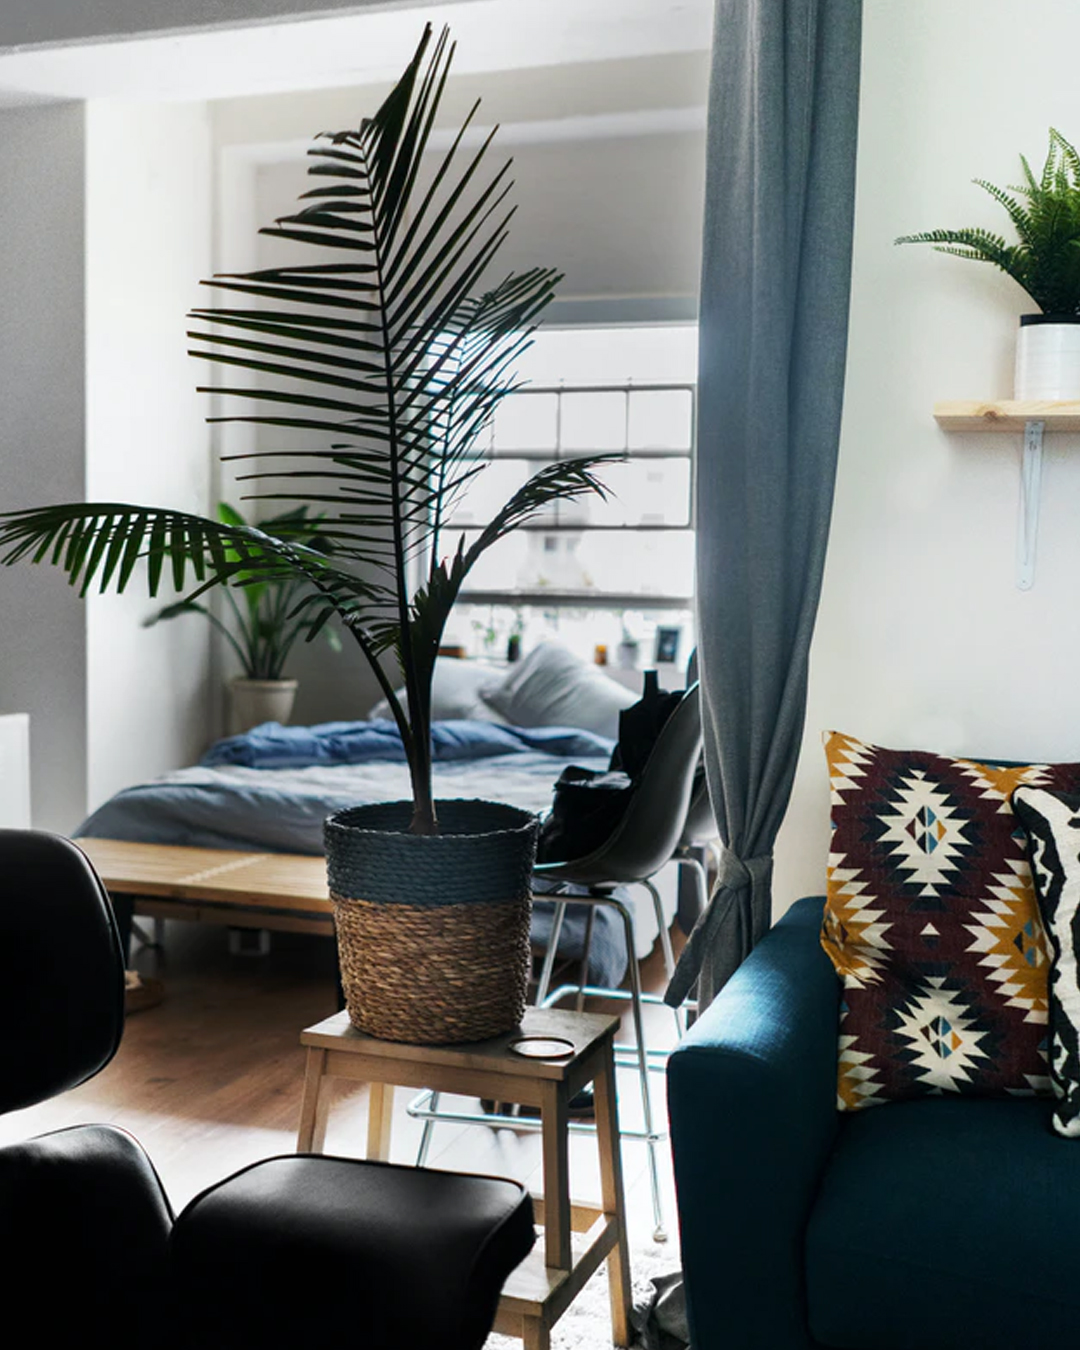 corner of studio apartment with modern furniture and a large indoor plant on a stool